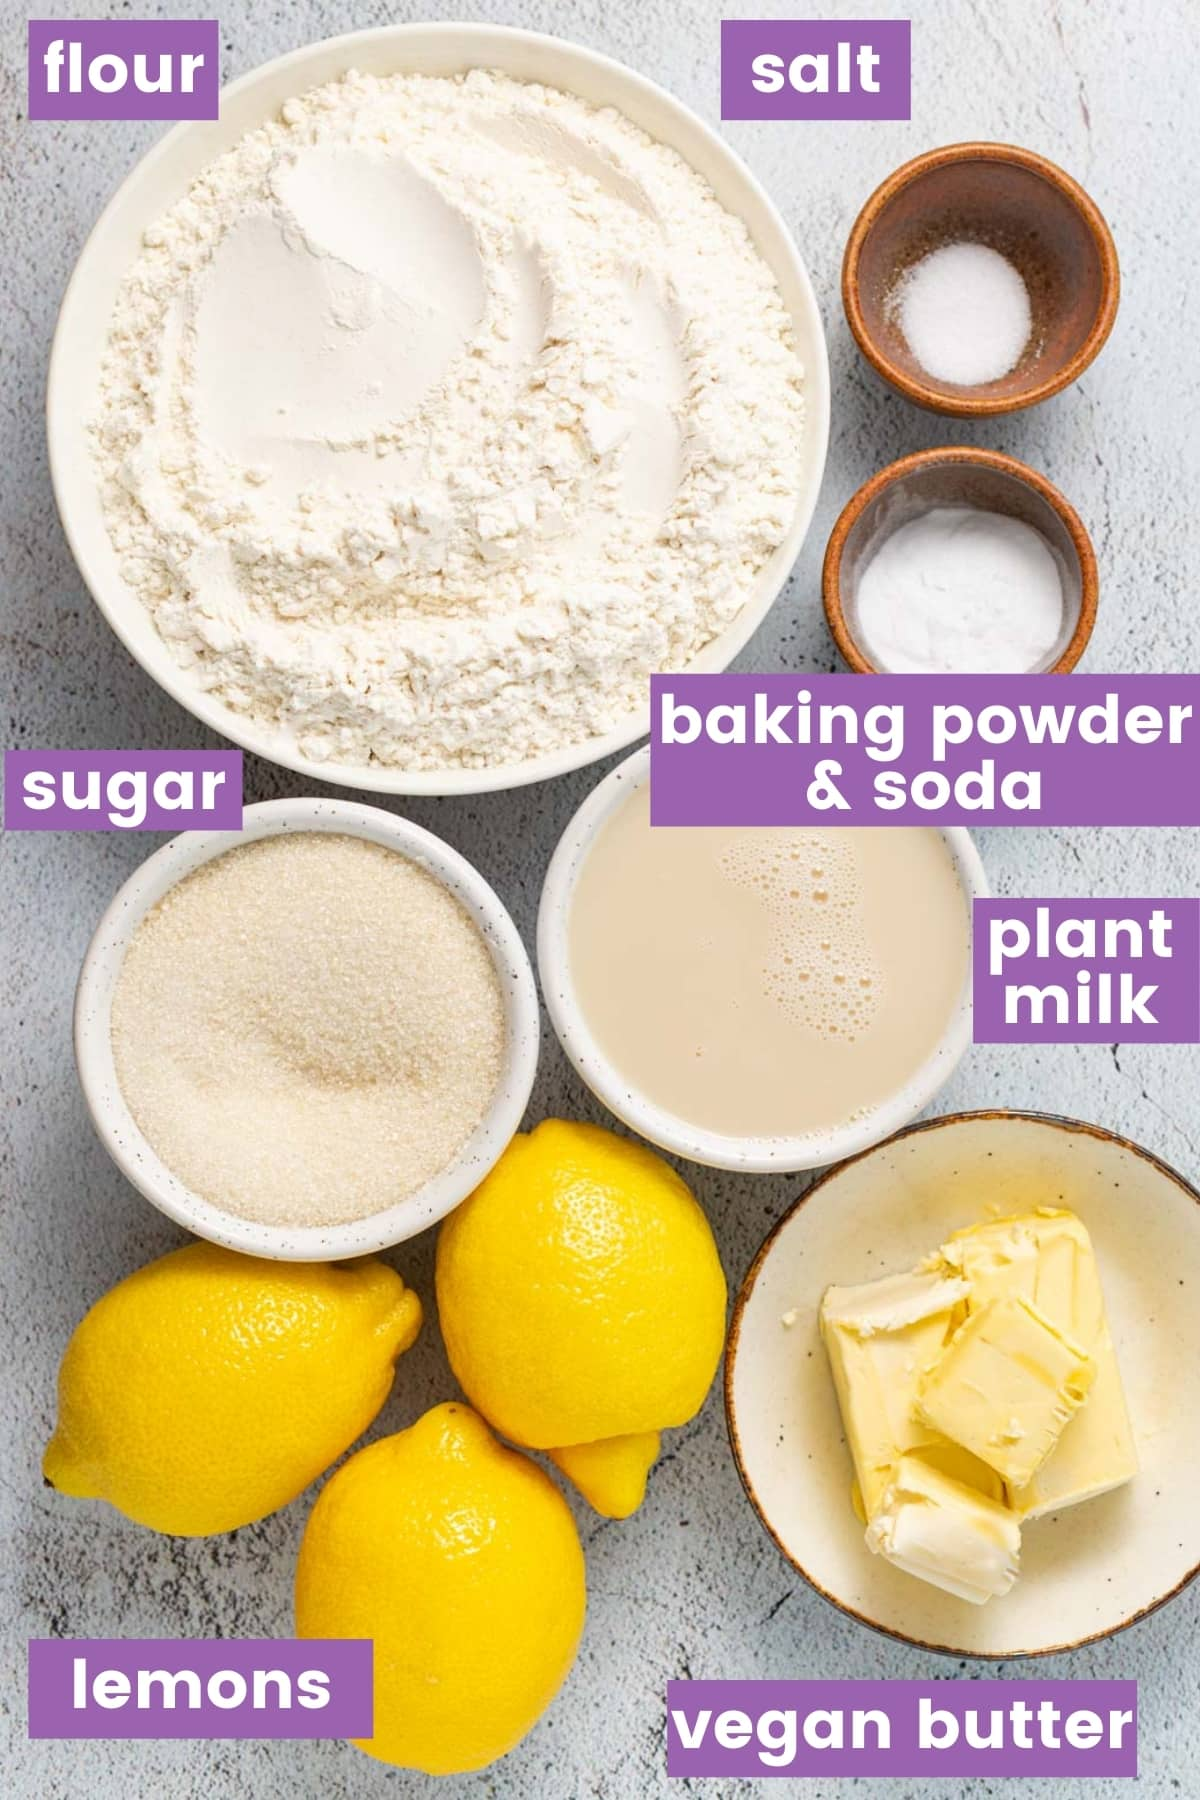 ingredients for lemon muffins as per the written list